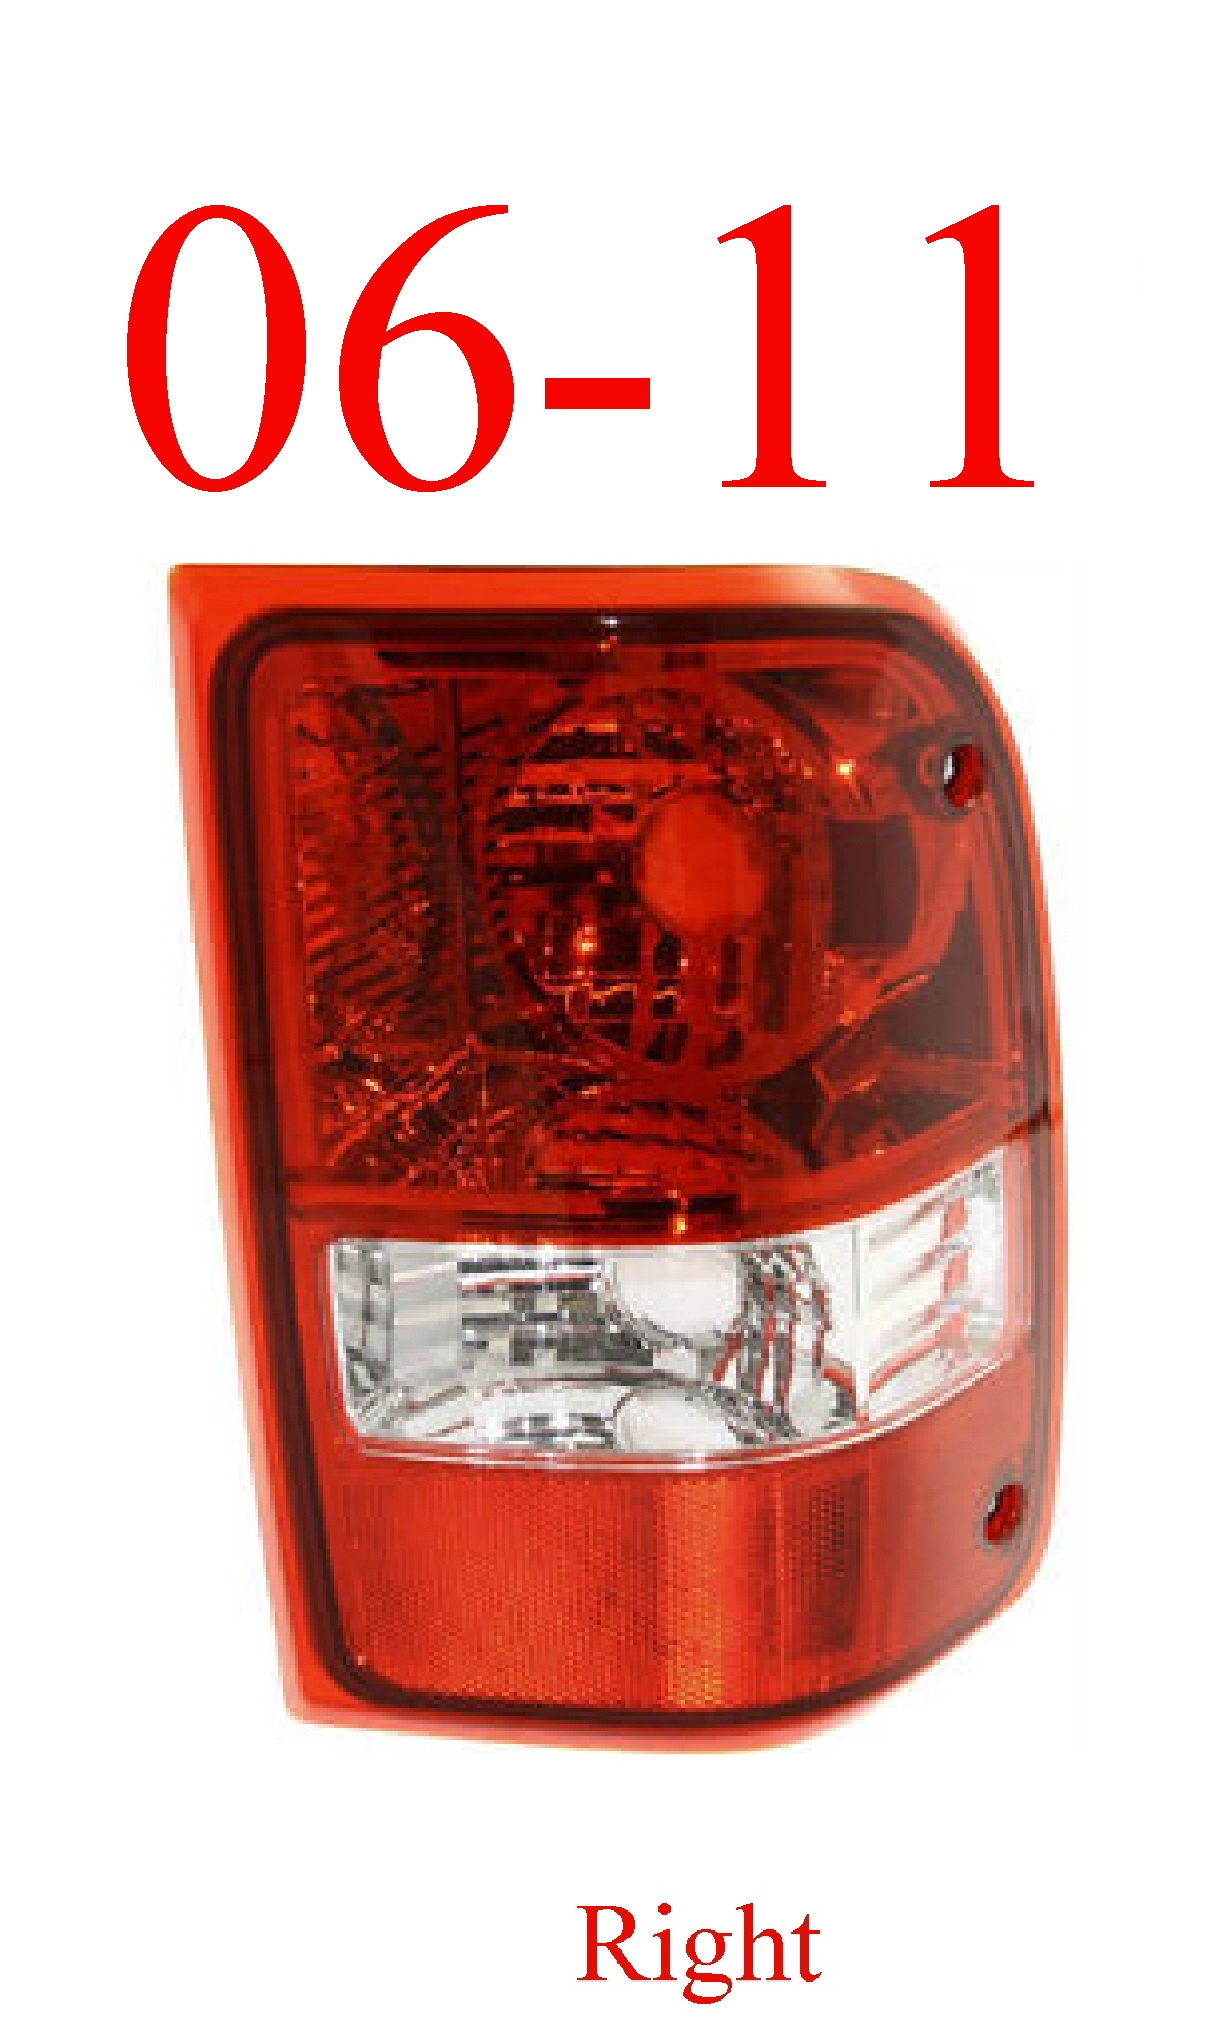 06-11 Ranger Right Tail Light Assembly